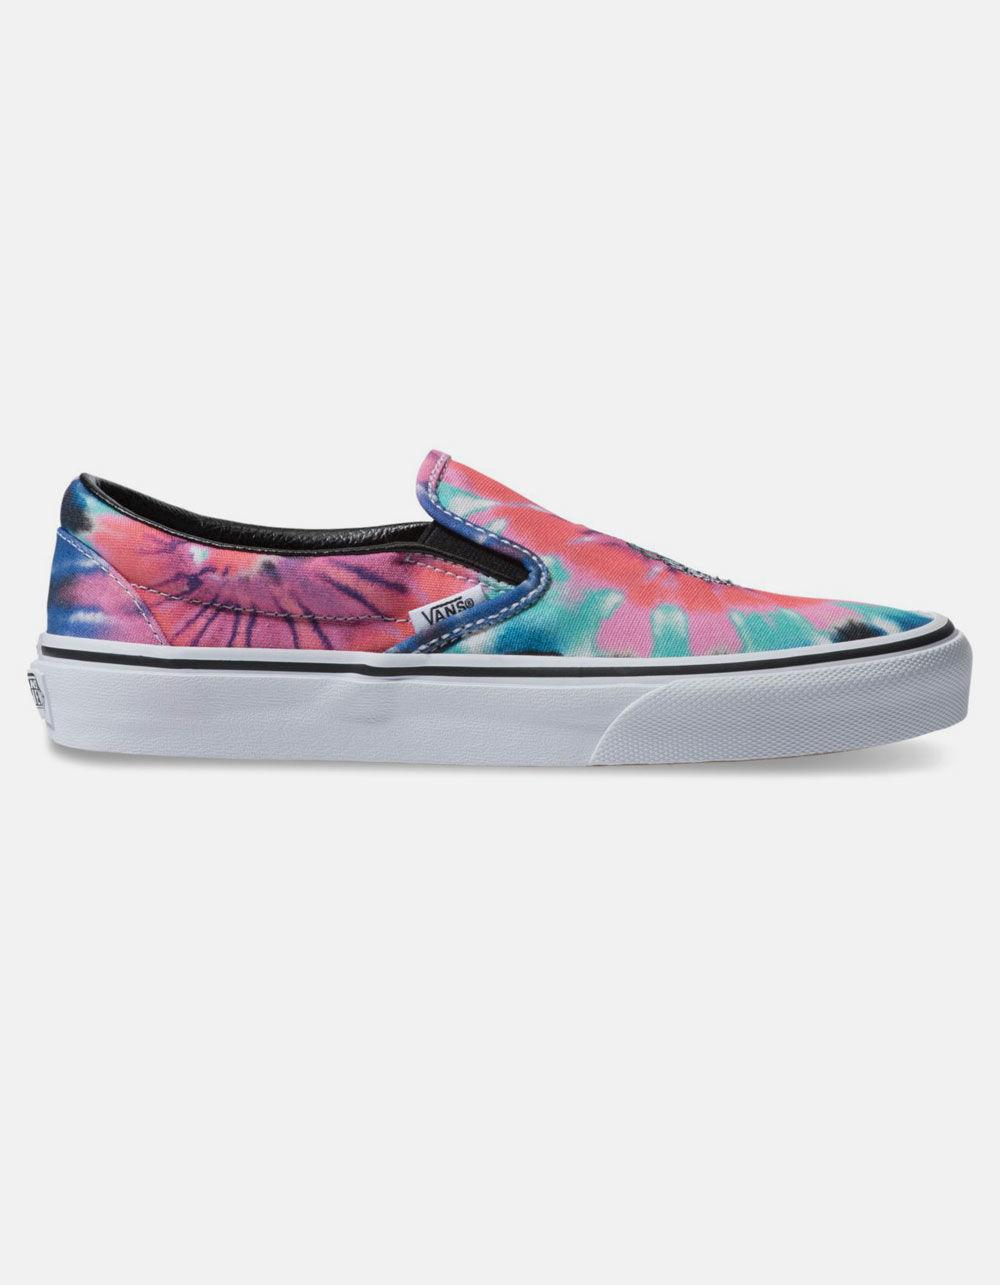 98a3f0118d Lyst - Vans Tie Dye Classic Slip-on Womens Shoes